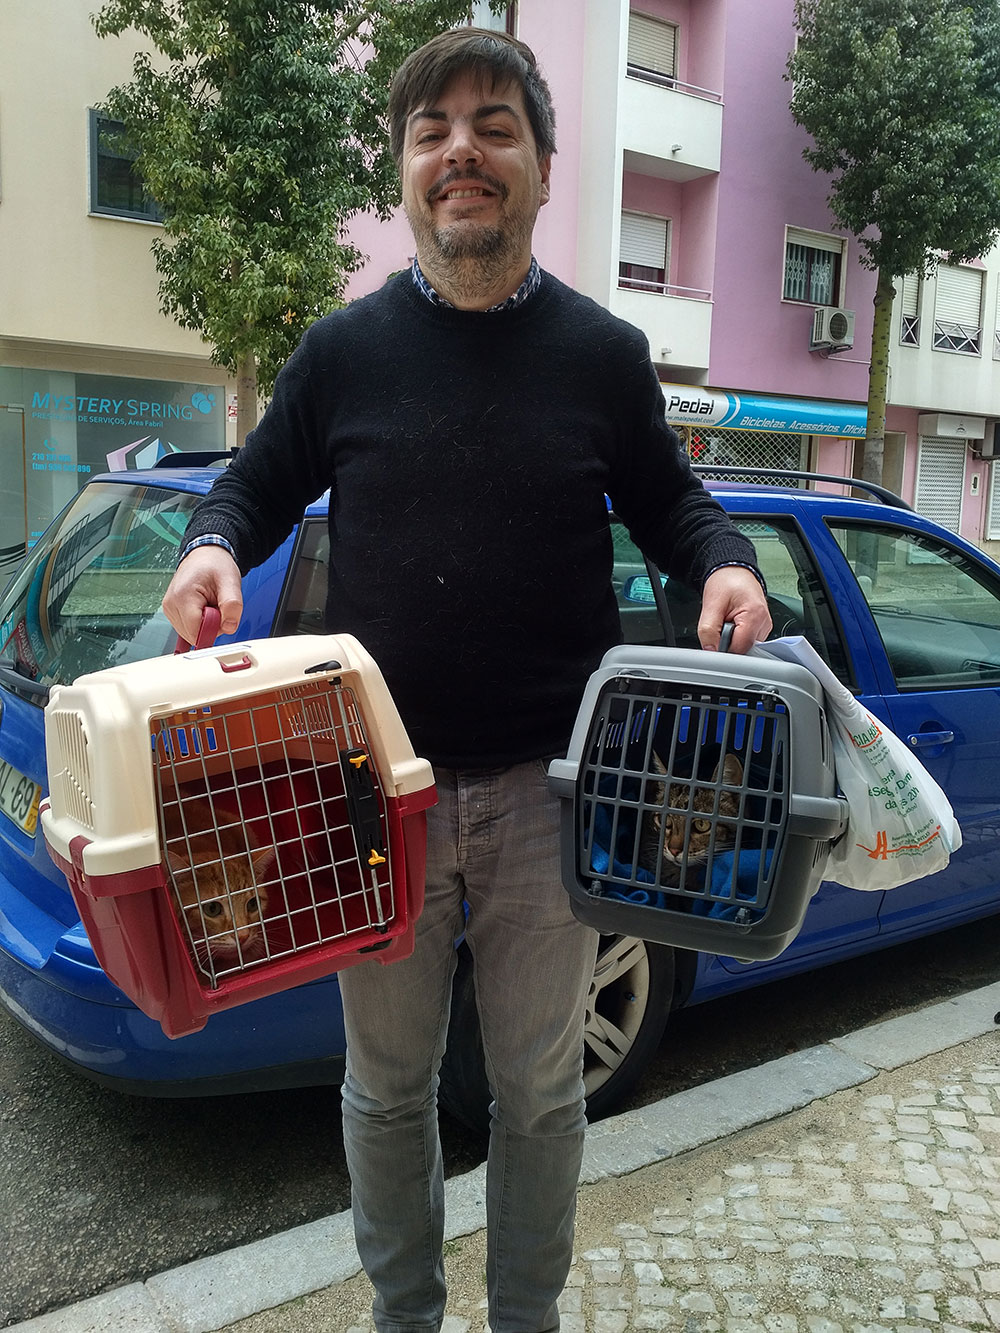 We met up with Nuno and the cats in Montijo